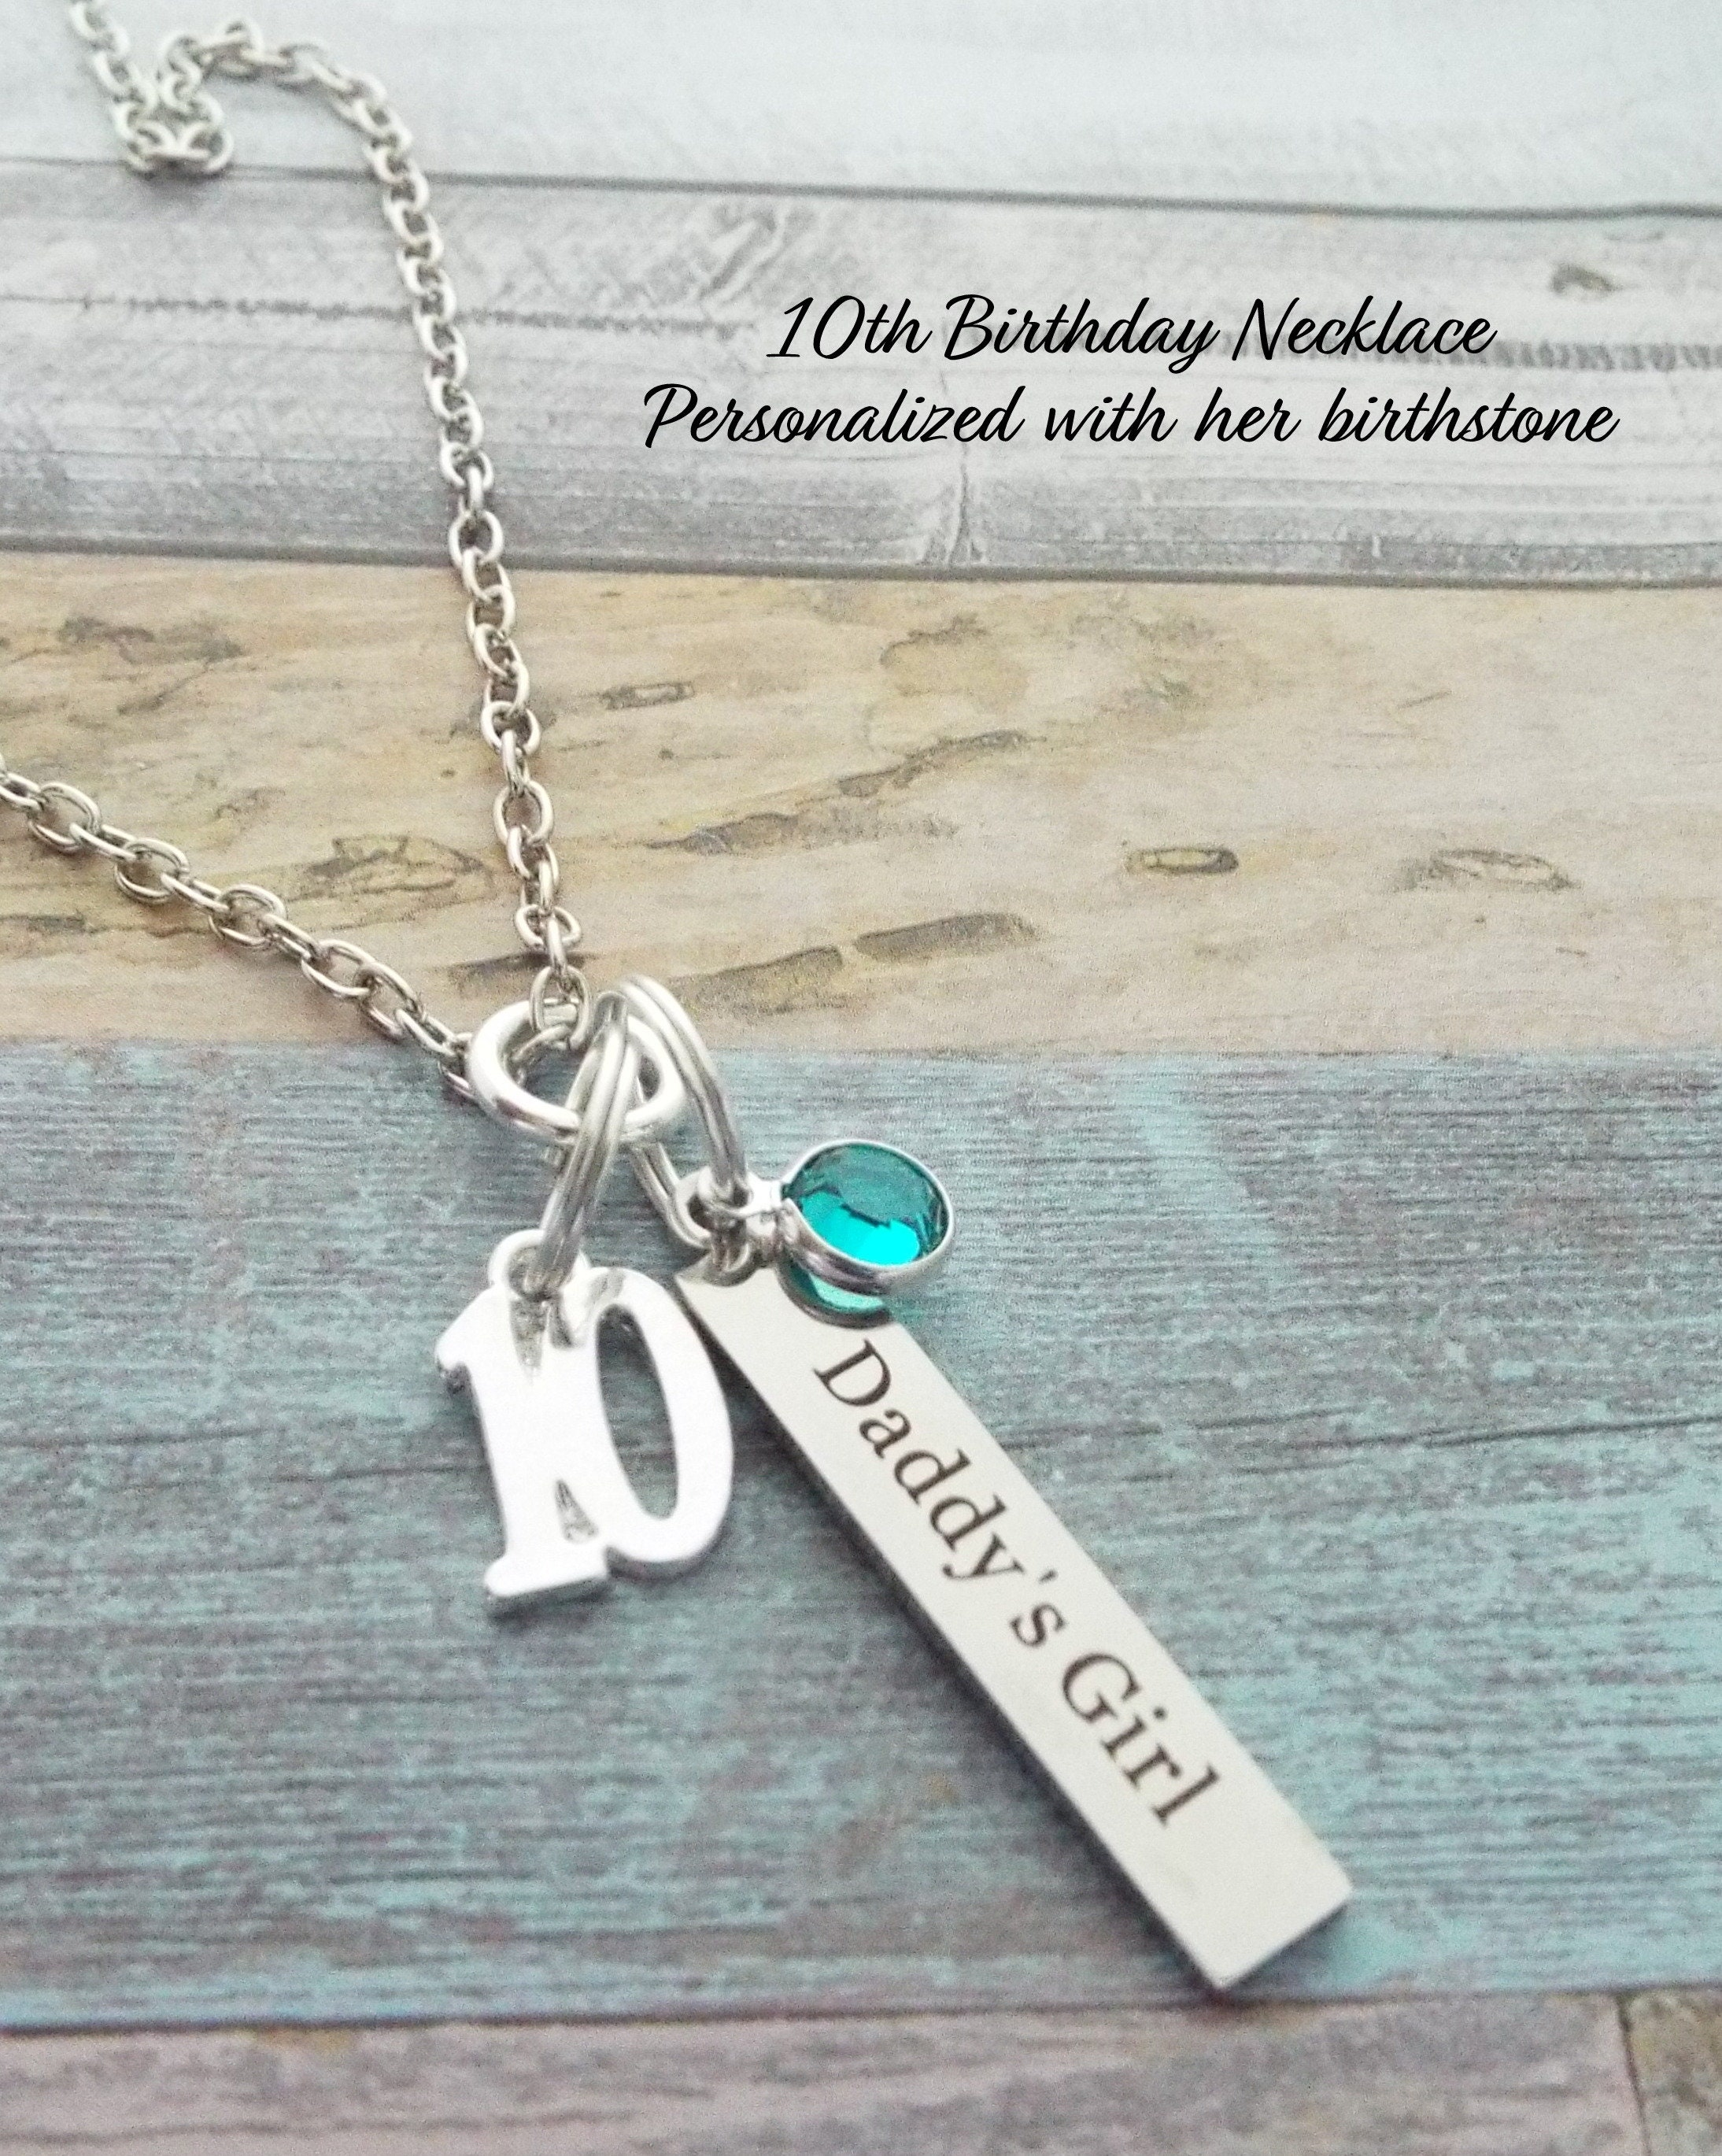 10th Birthday Gift For Daughter Father To 10 Year Old Girl Dad Birthstone Jewelry